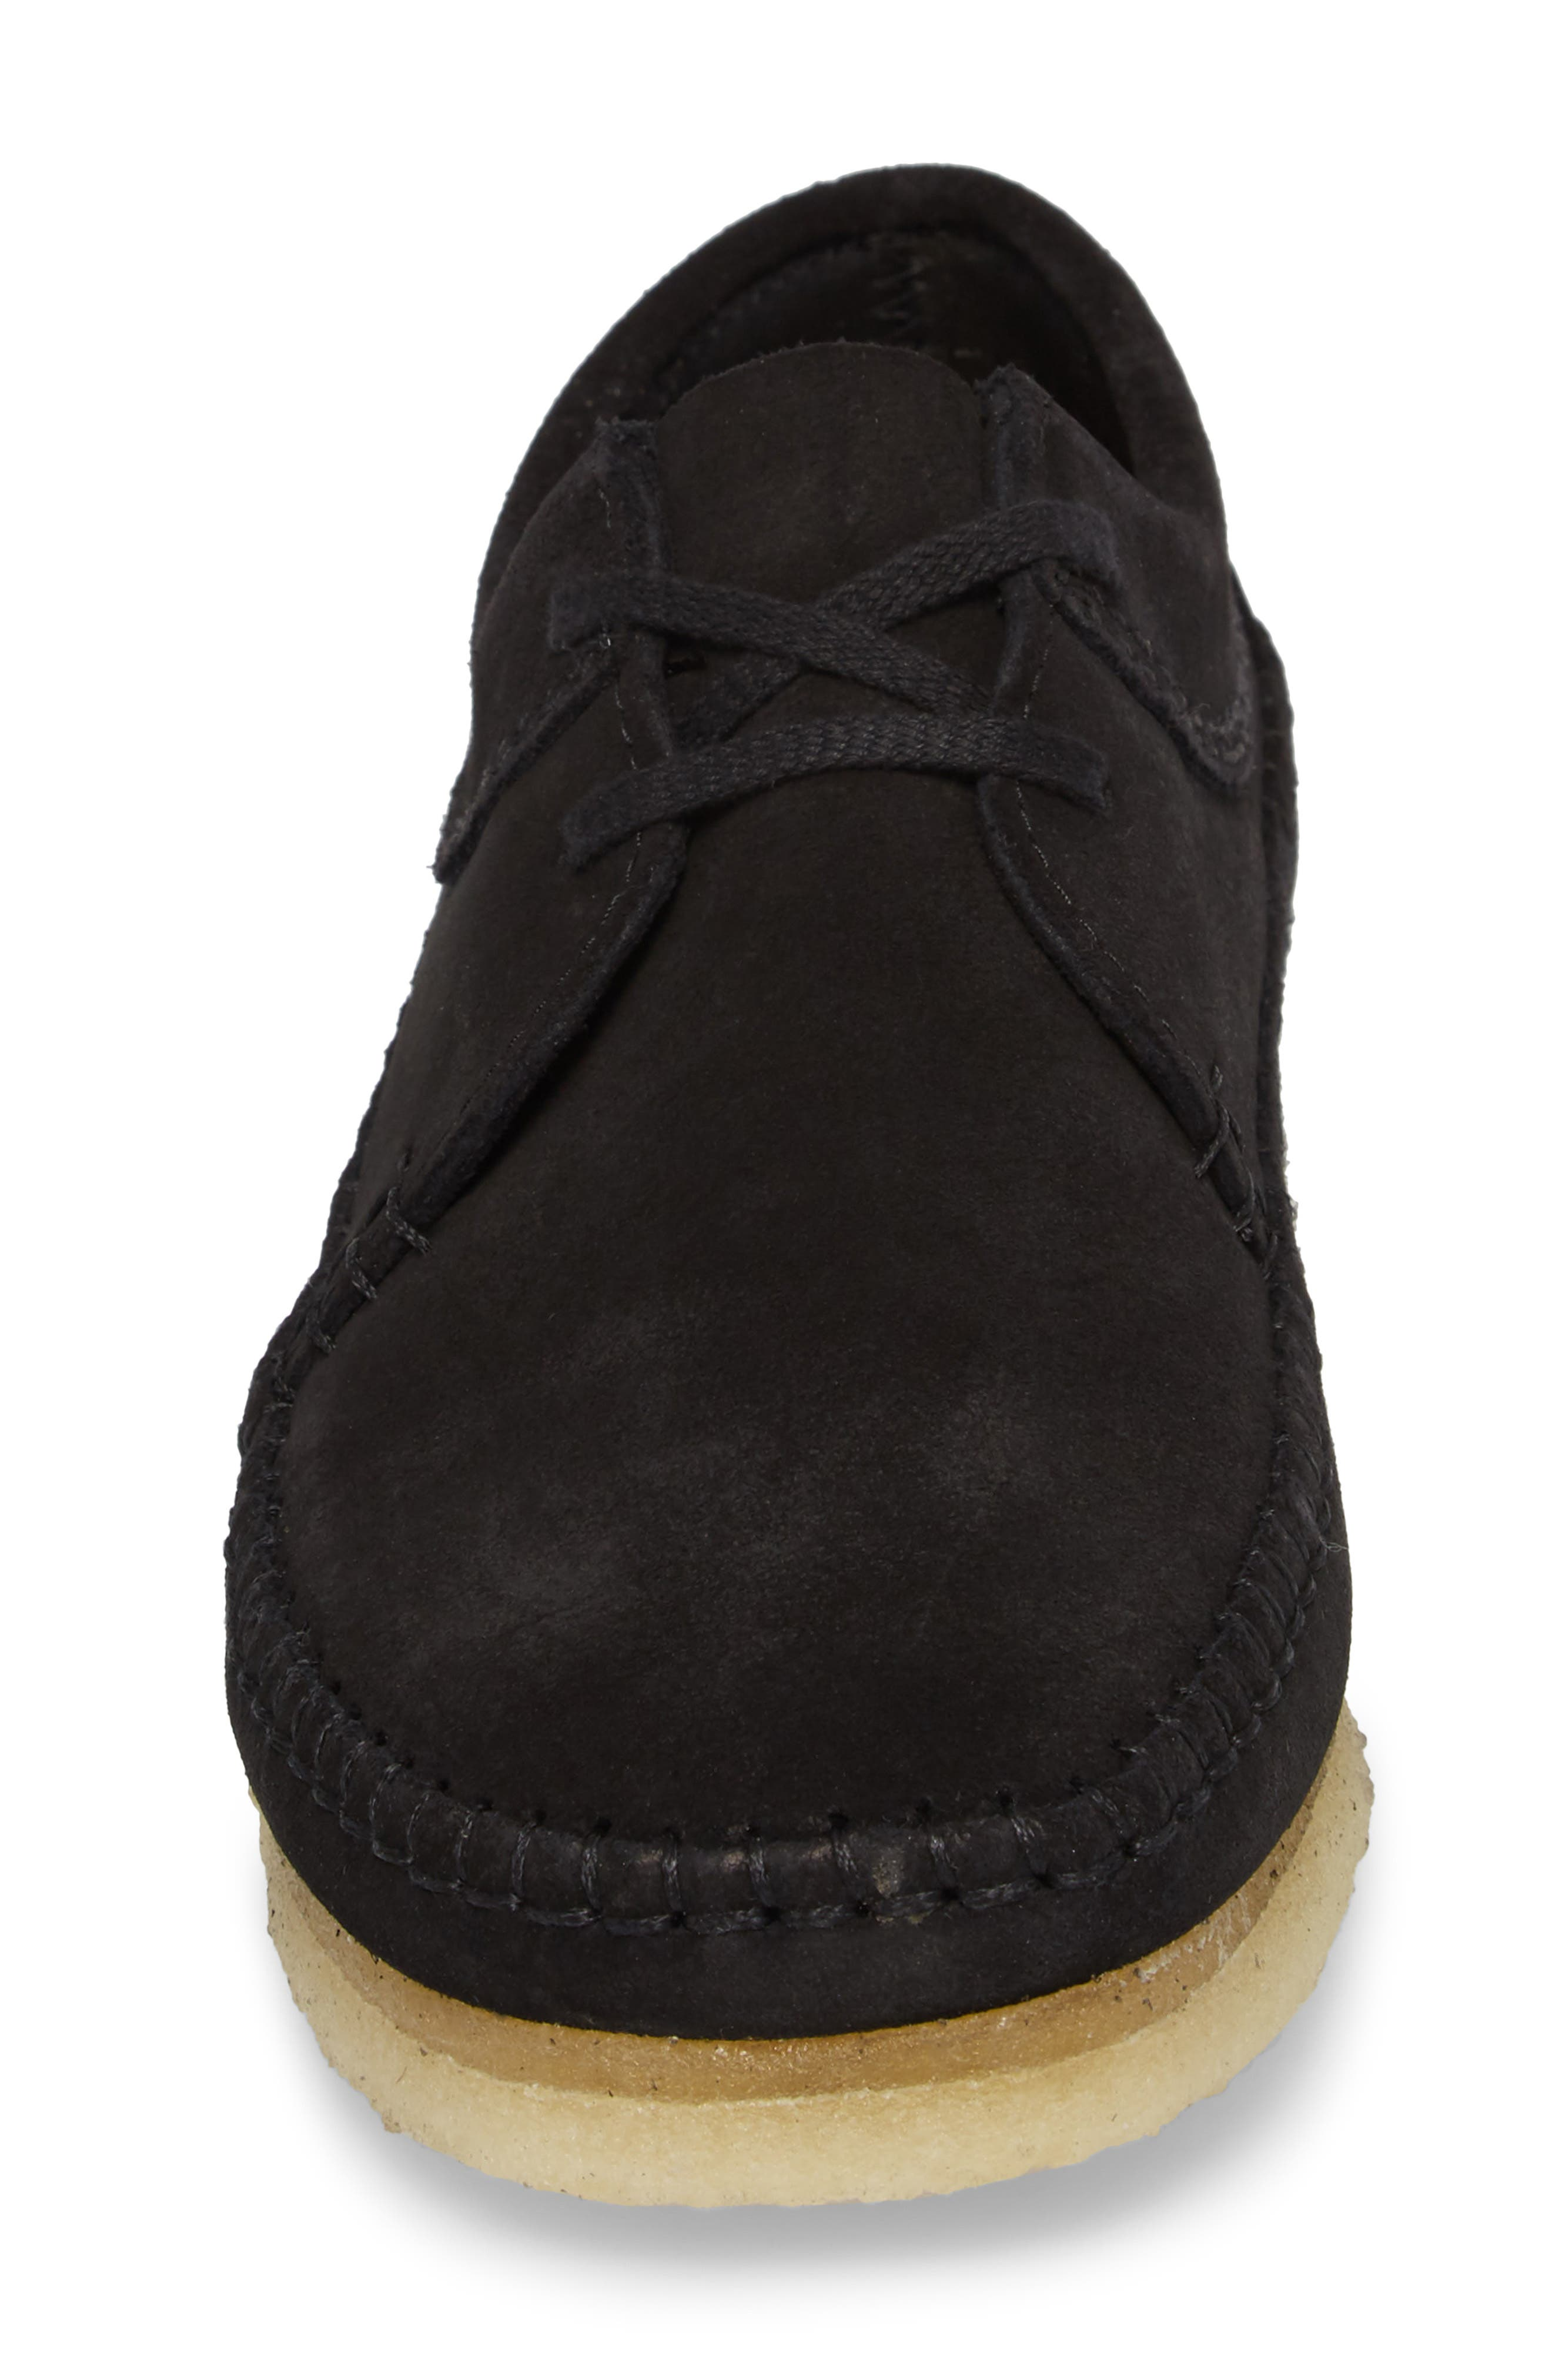 Weaver Moc Toe Derby,                             Alternate thumbnail 4, color,                             Black Suede